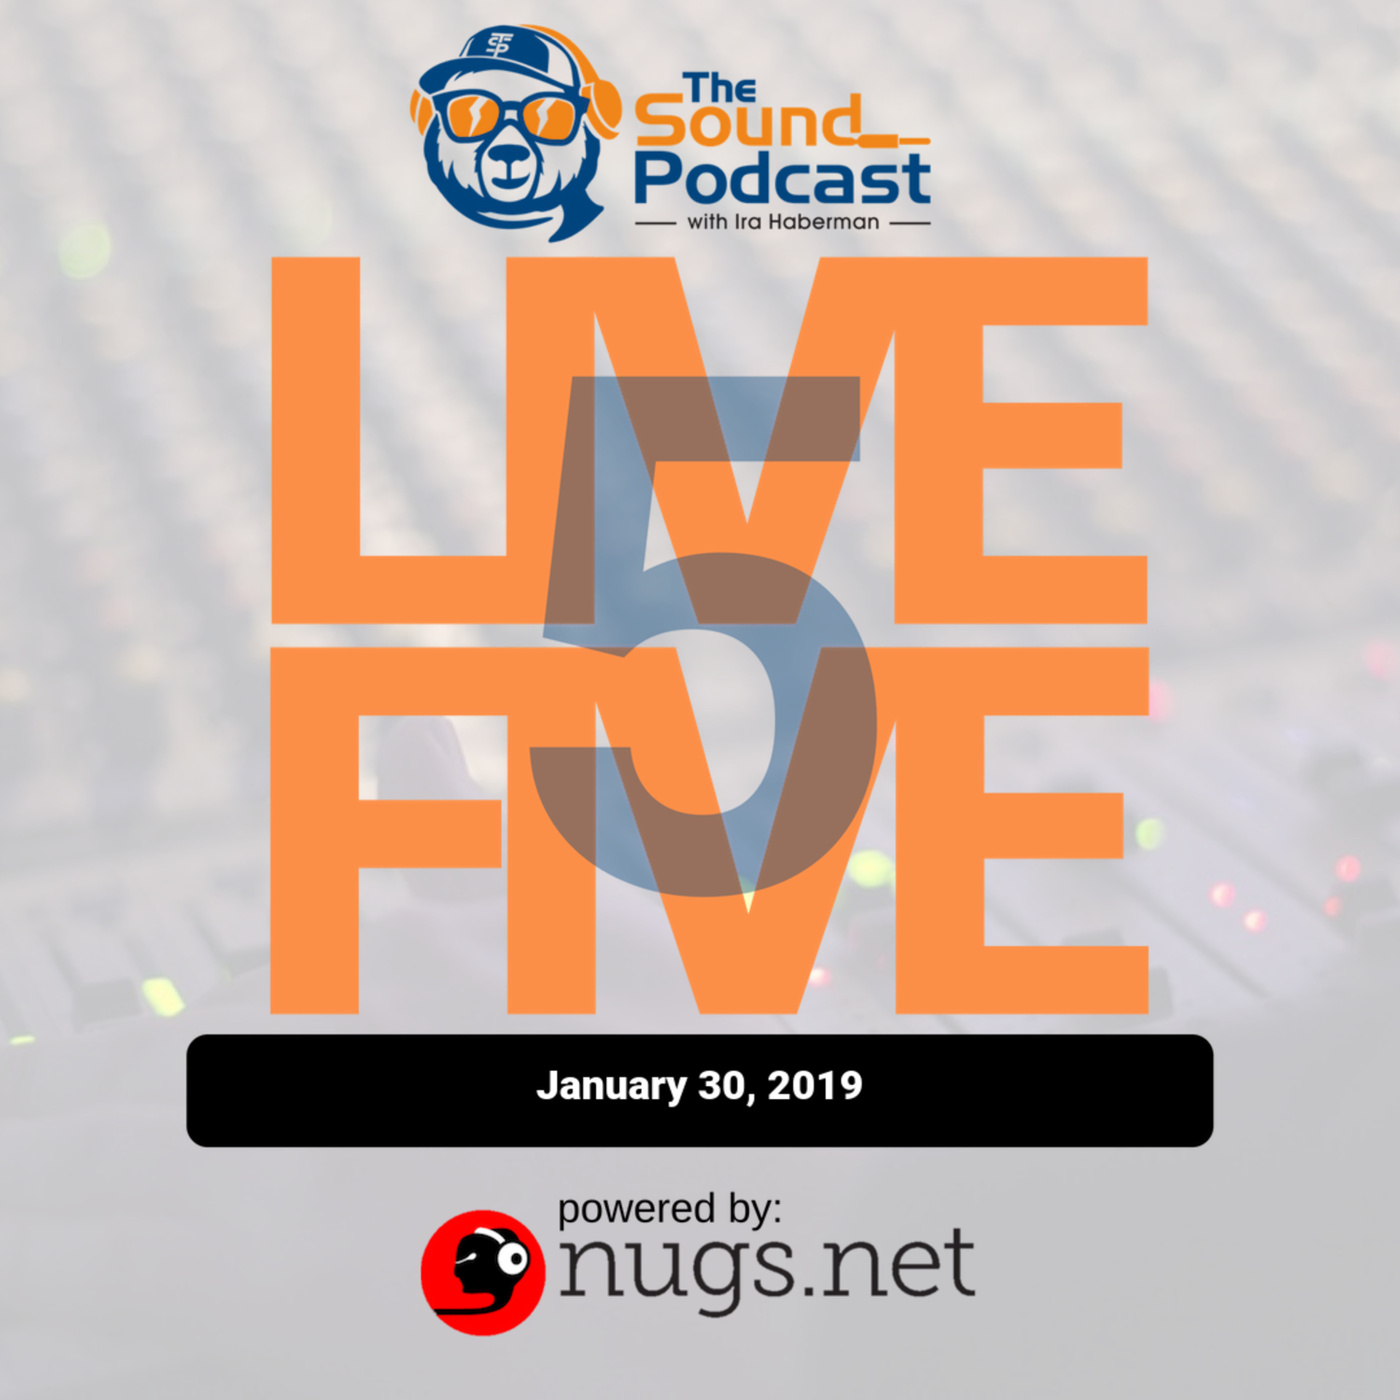 Episode: 5 - Live 5 - January 30, 2019.